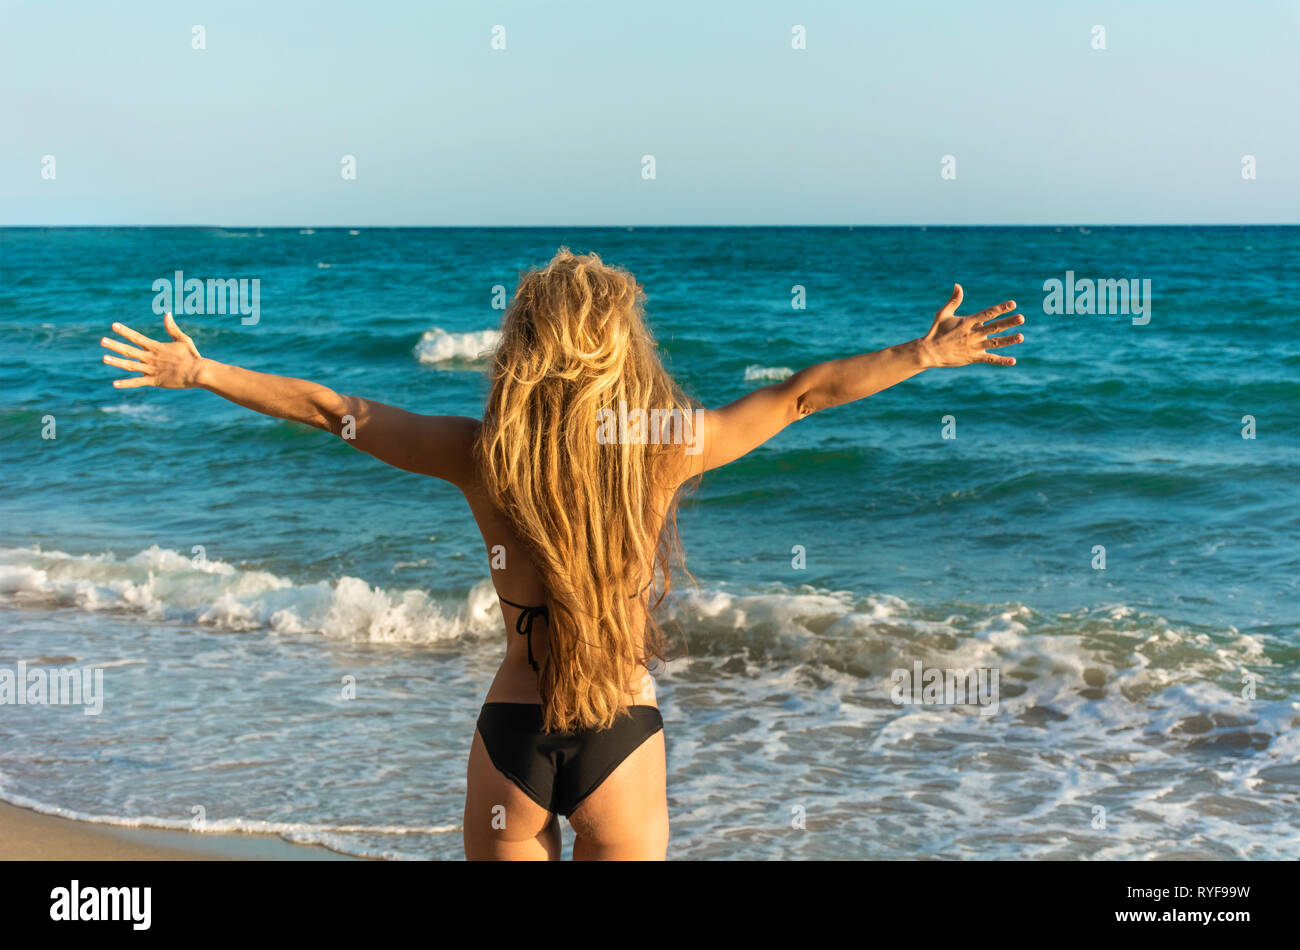 Concept of woman spreading hands embracing freedom new life happiness life goals success - Rear view of girl on beach wide open raised arms - Happy yo Stock Photo